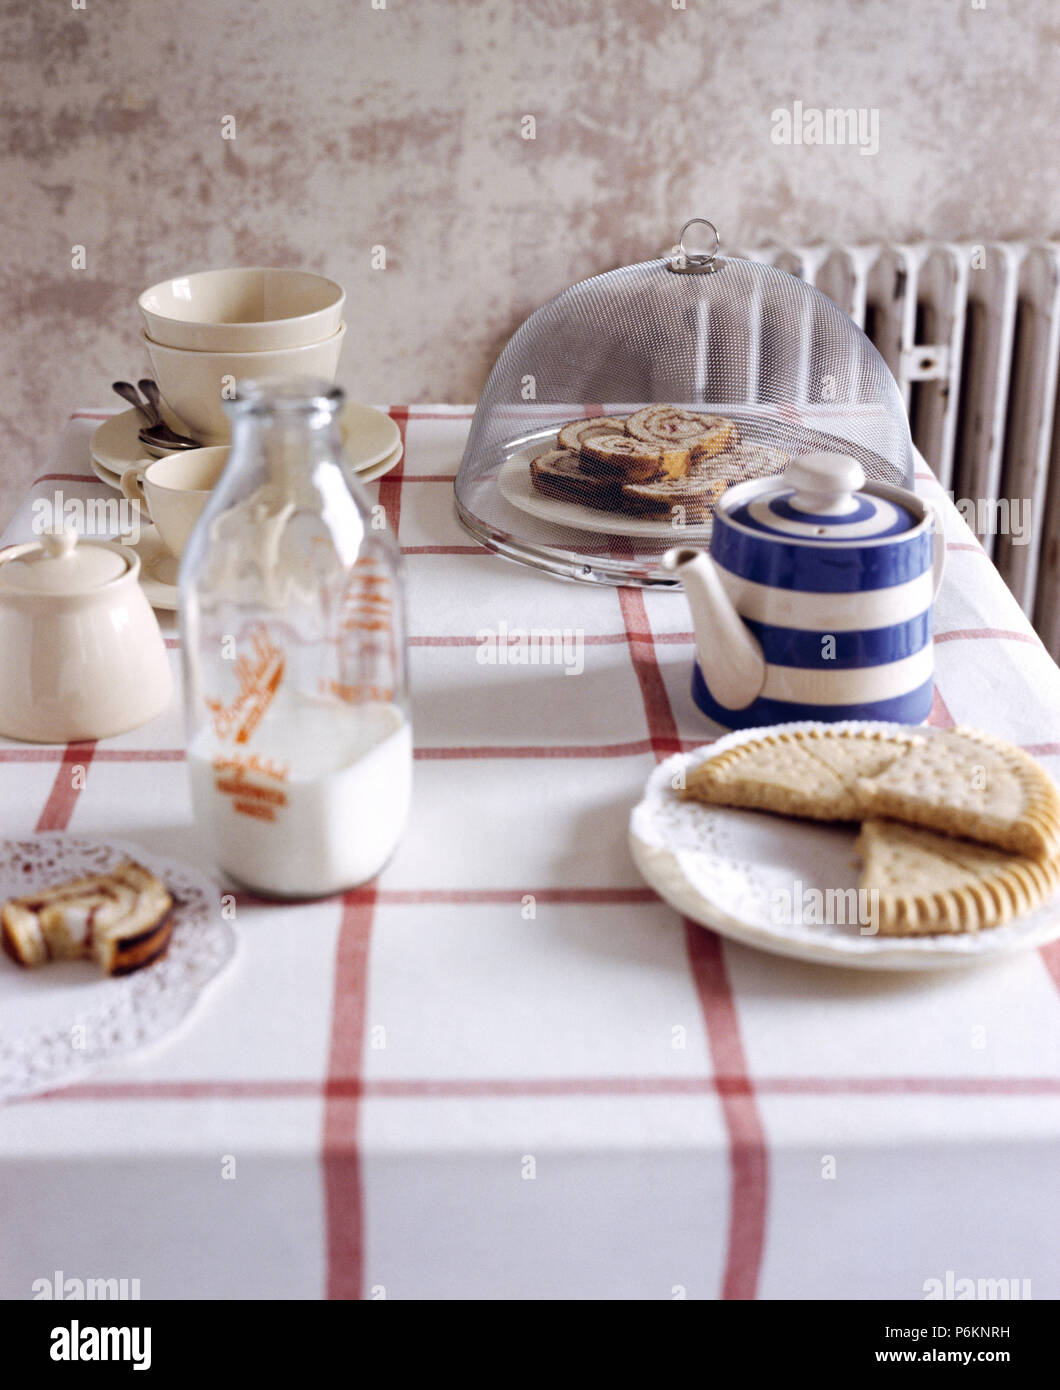 Blue+white striped teapot and a vintage glass milk bottle on a table with a checked cloth and a plate of shortbread - Stock Image